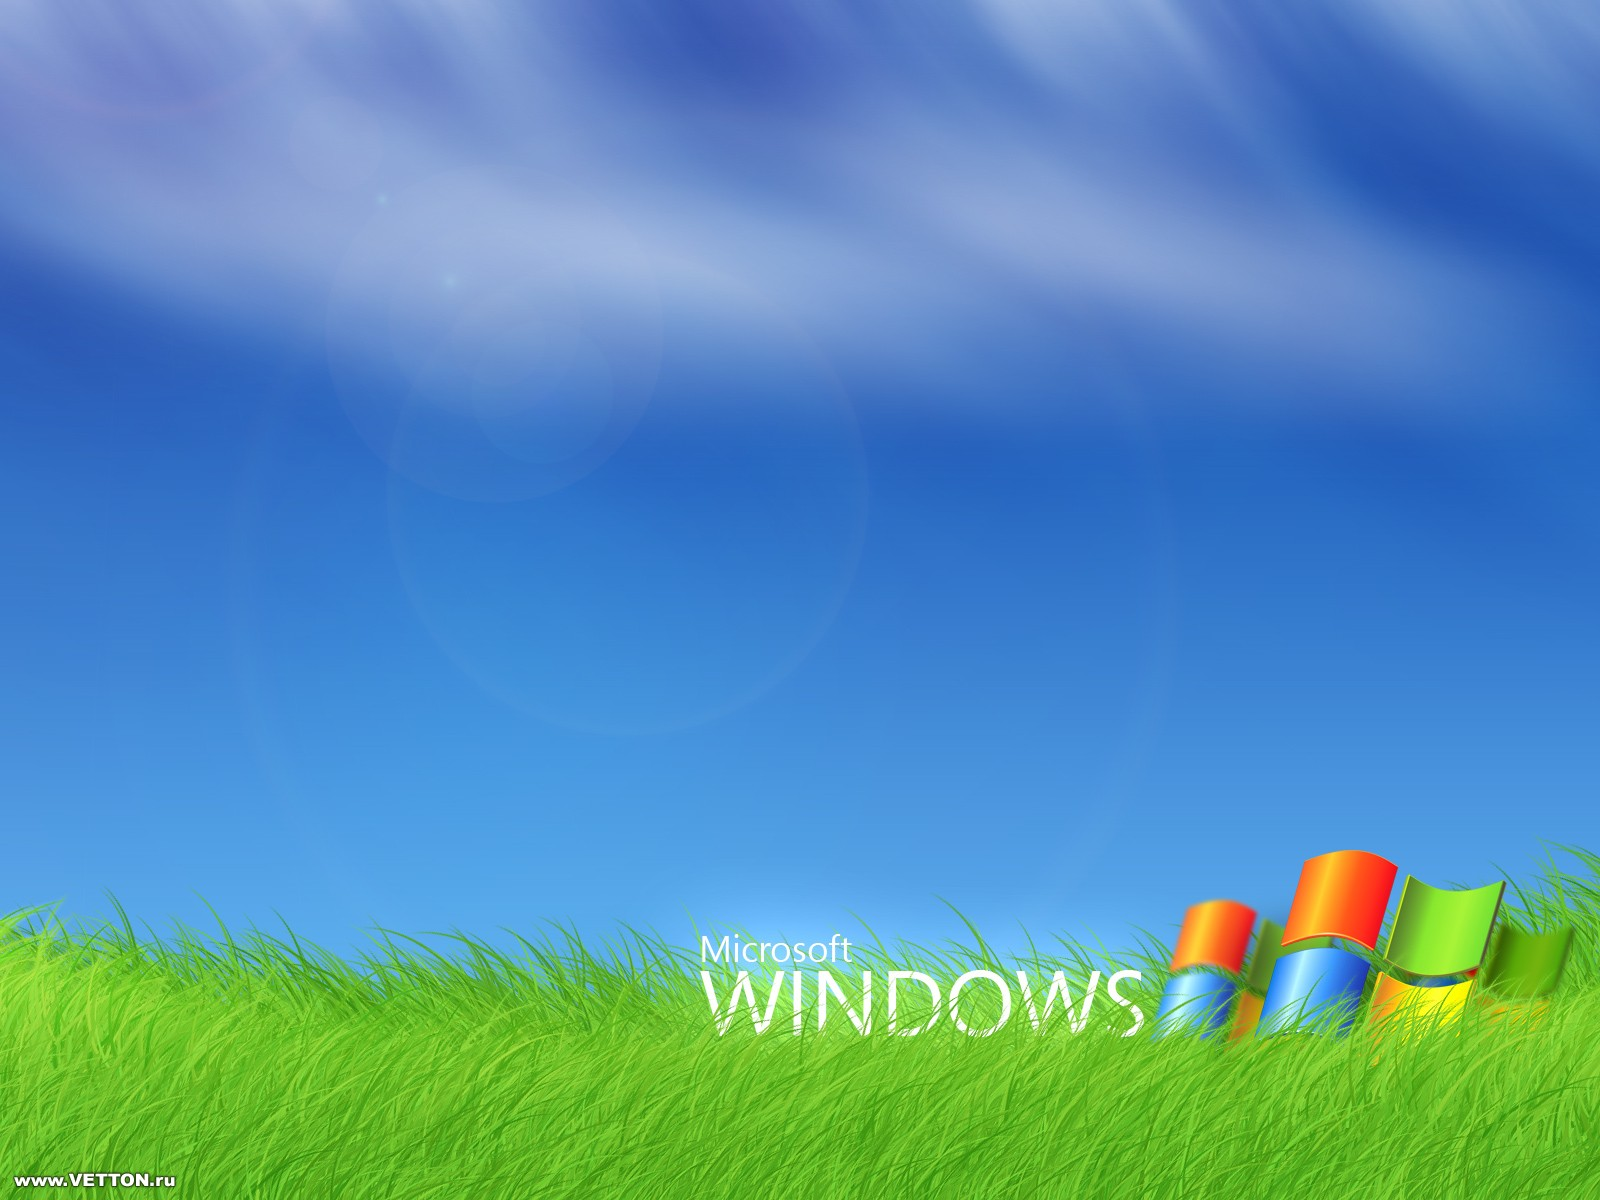 Windows XP wallpaper Windows XP wallpapers 1 ...